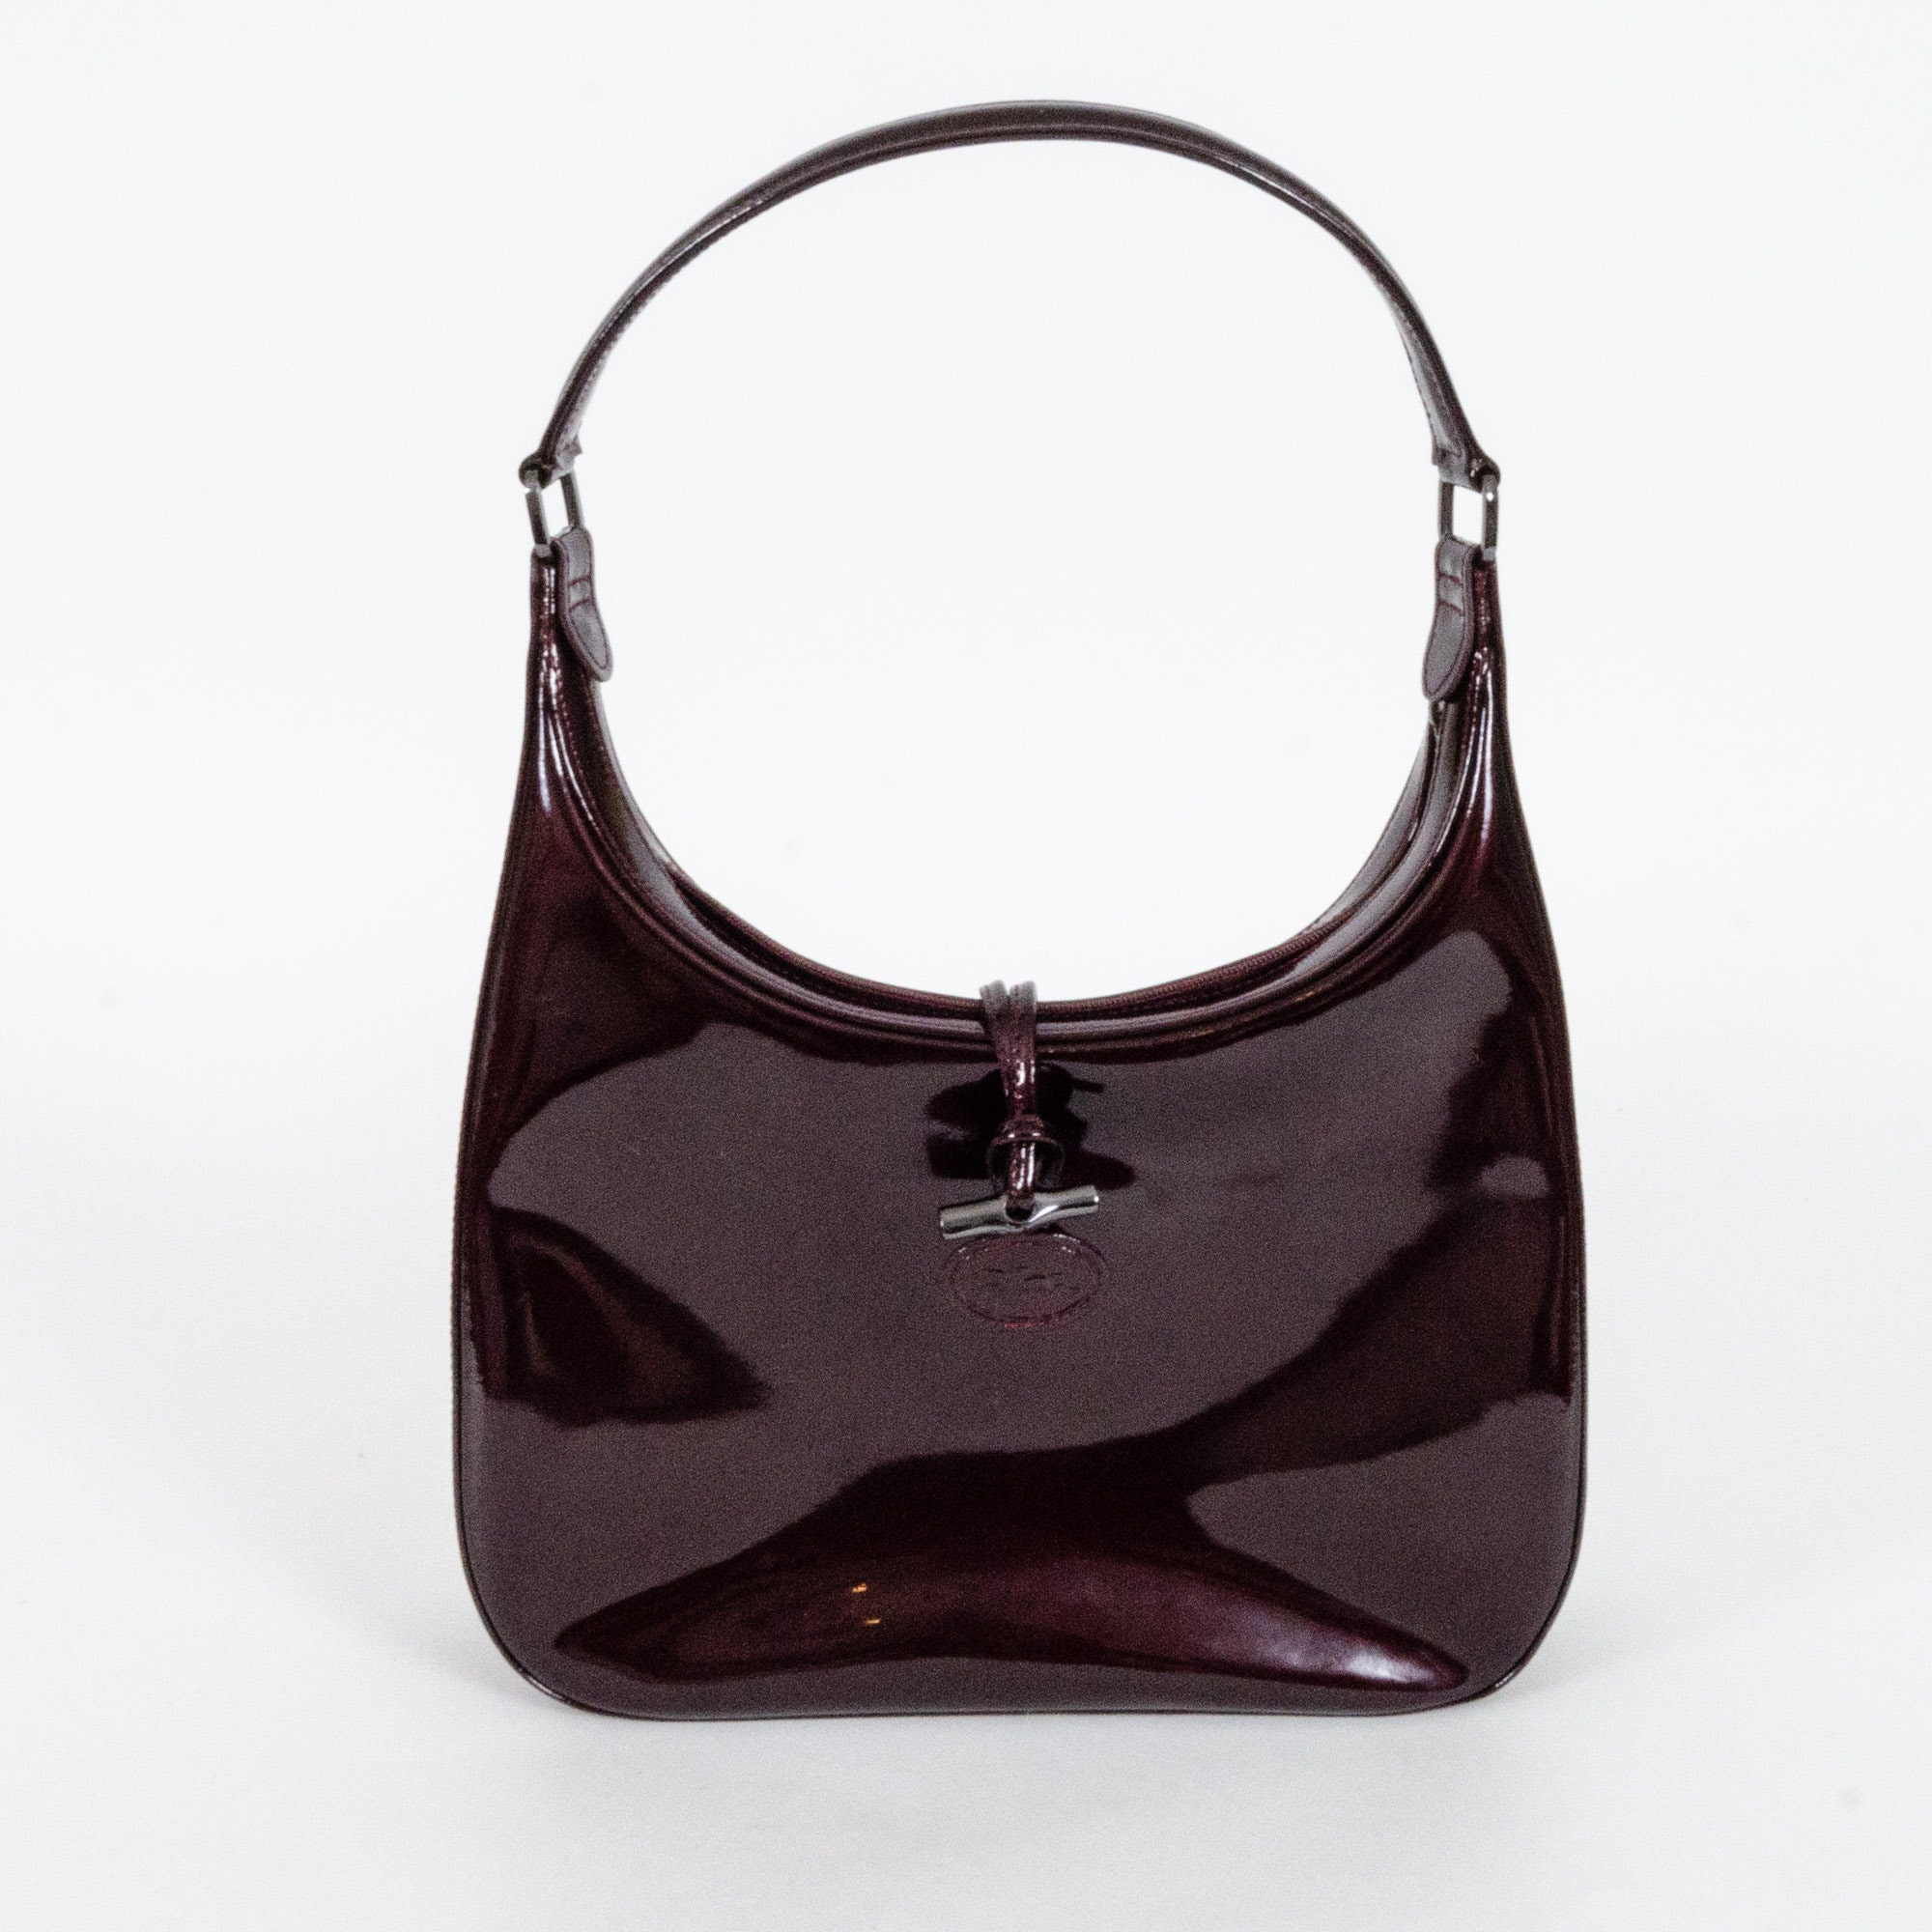 Longchamp Deep Wine Patent Leather Handbag